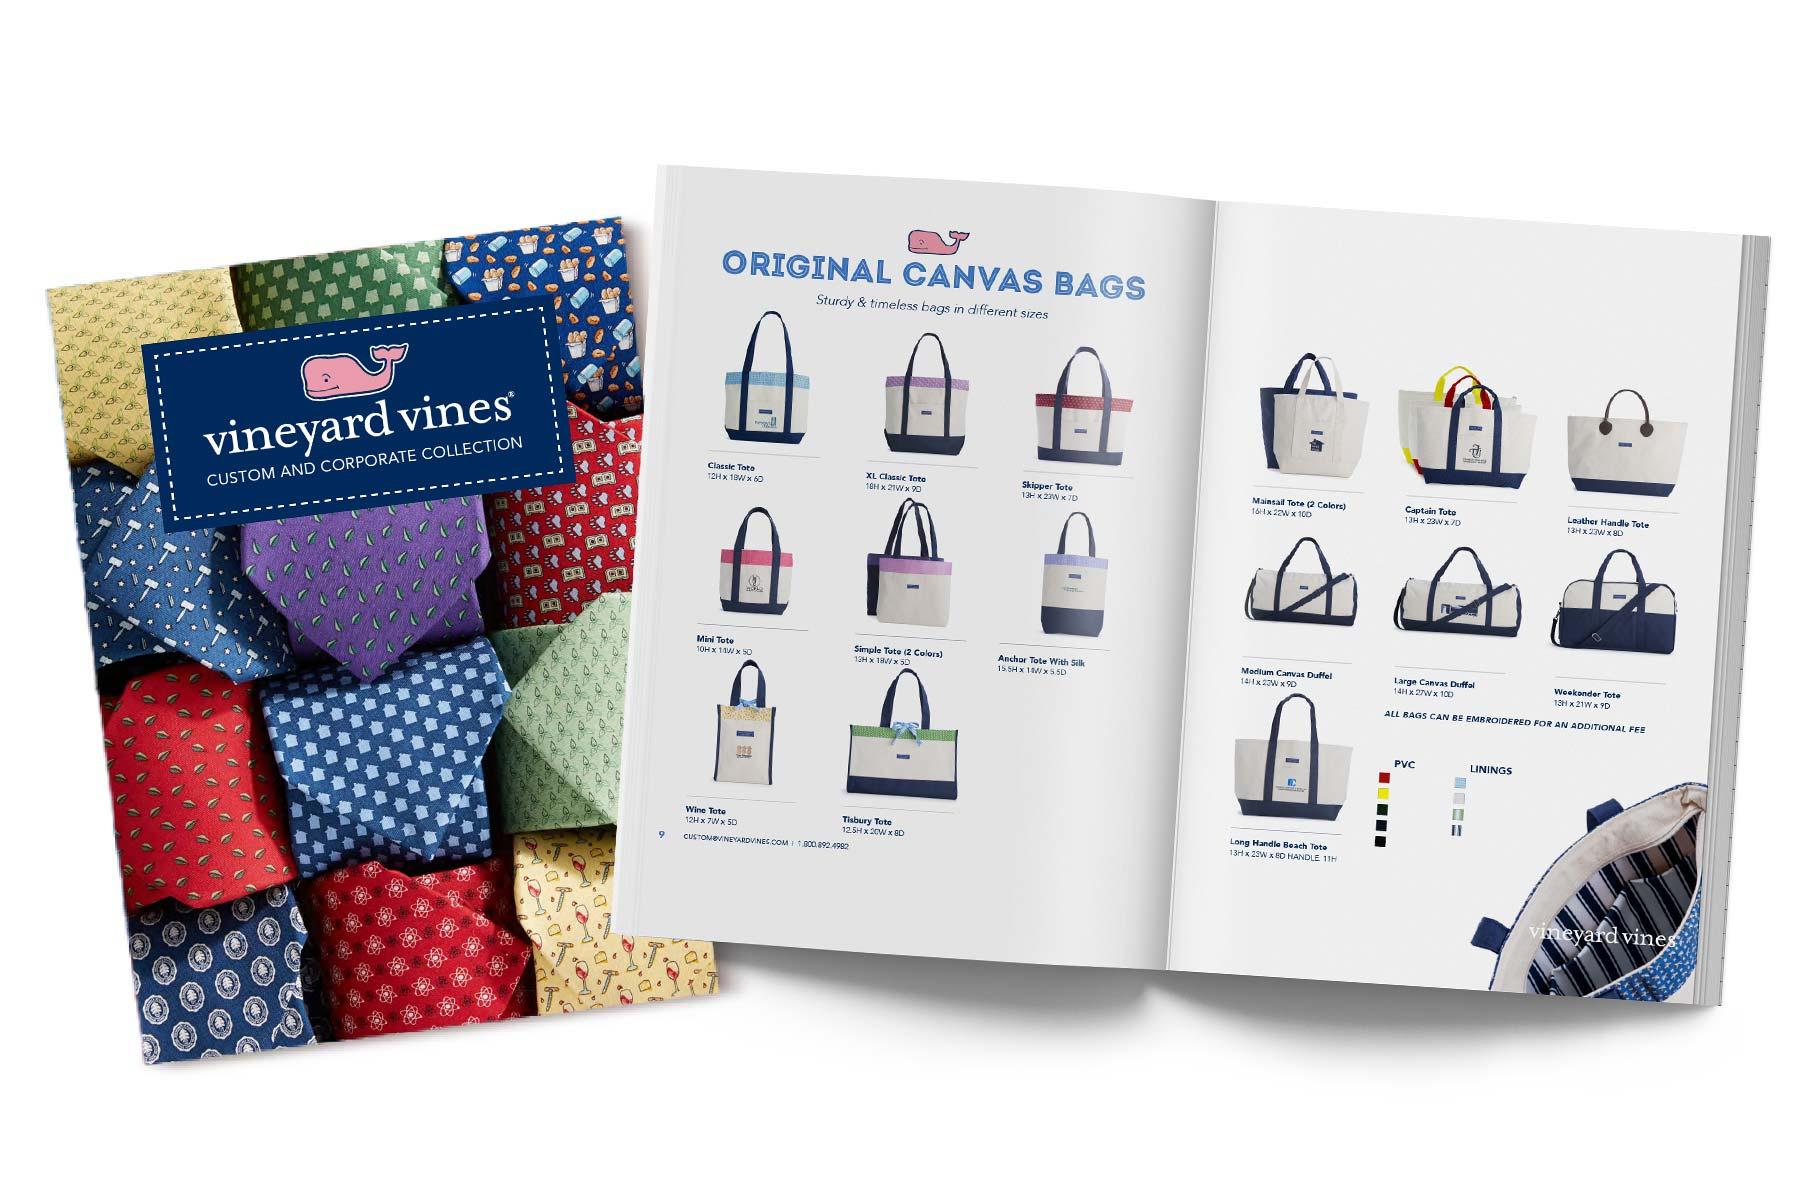 vineyard vines Custom and Corporate Collection catalog.